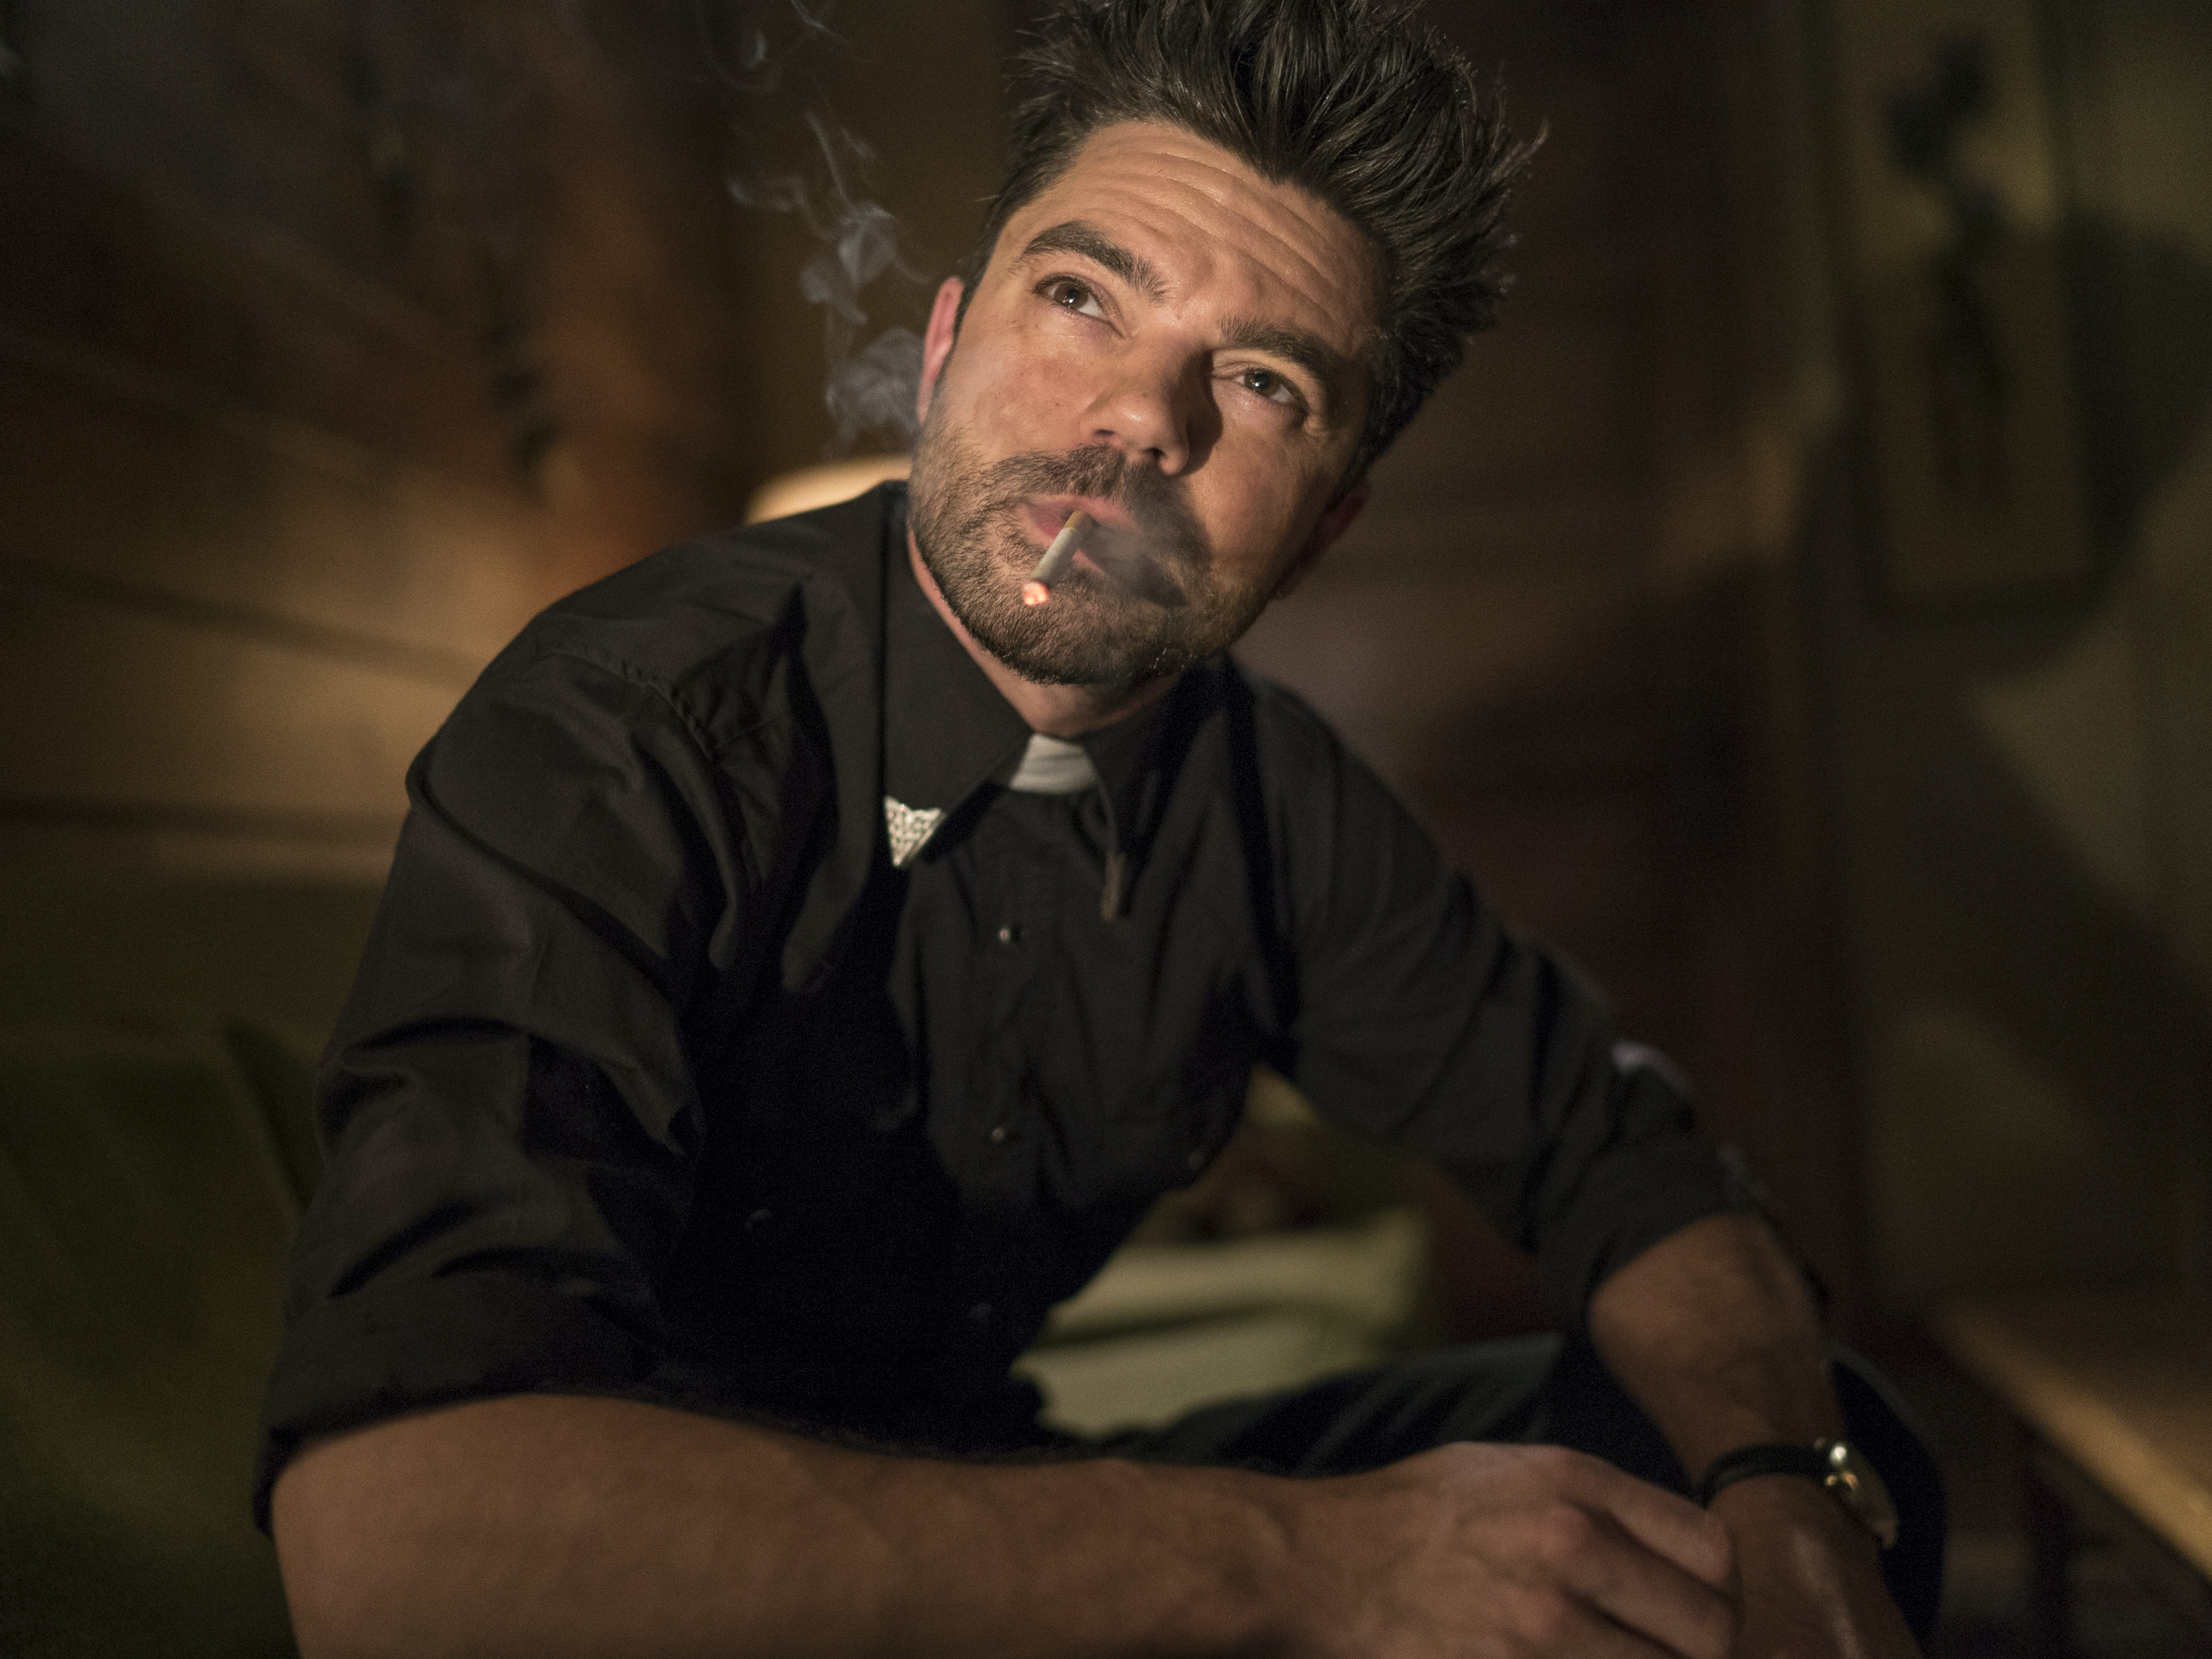 Jesse Seizes Genesis as 'Preacher' Series Diverges From the Comics